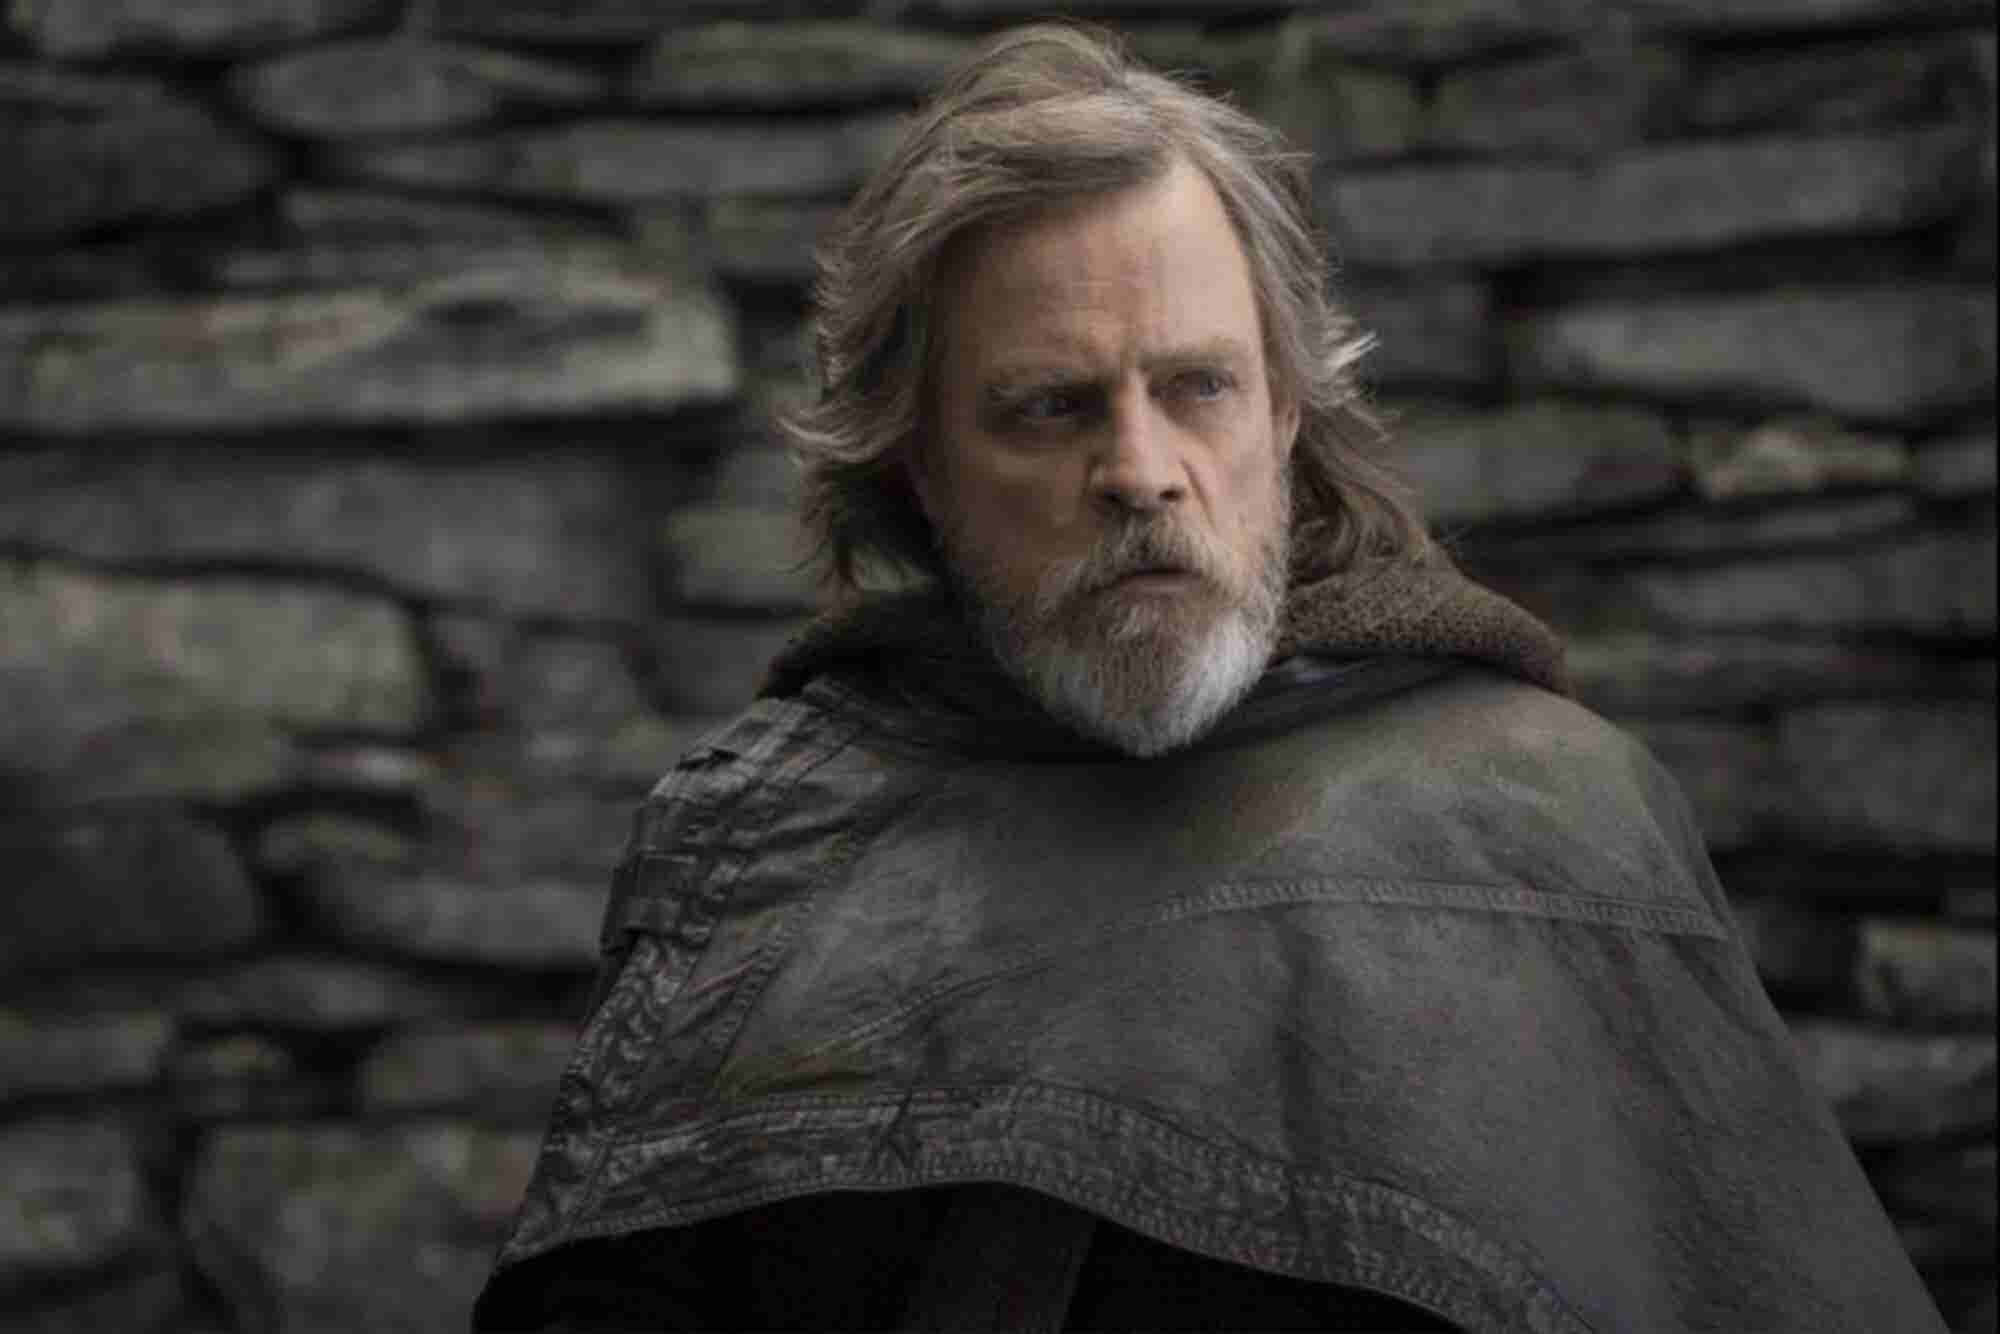 Star Wars: The Last Jedi Has Some Important Business Insights for Entrepreneurs